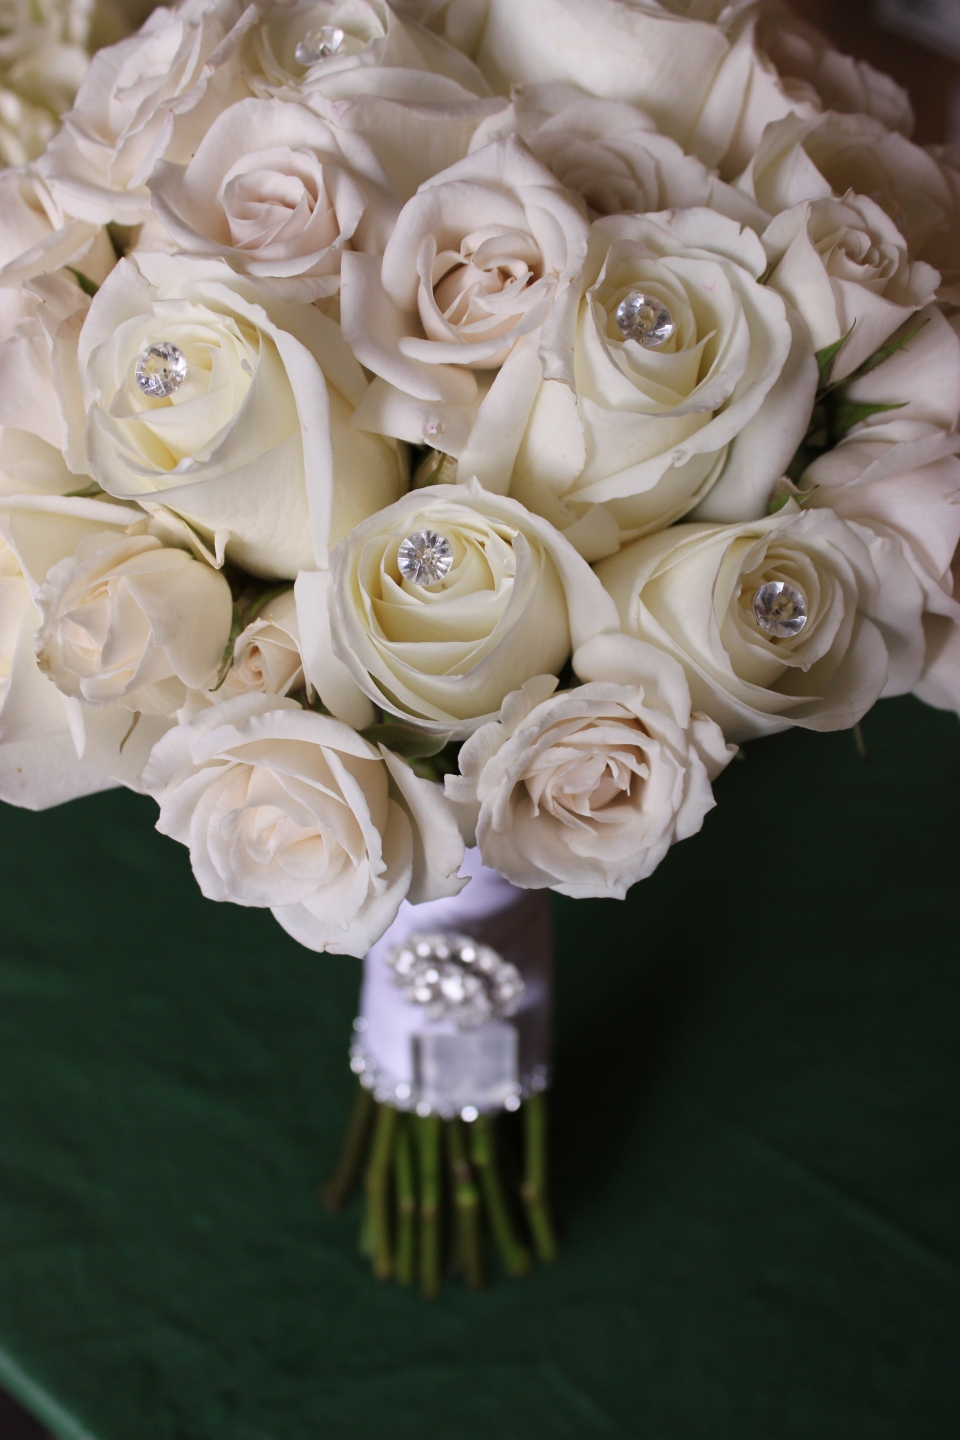 White rose bouquet with crystals